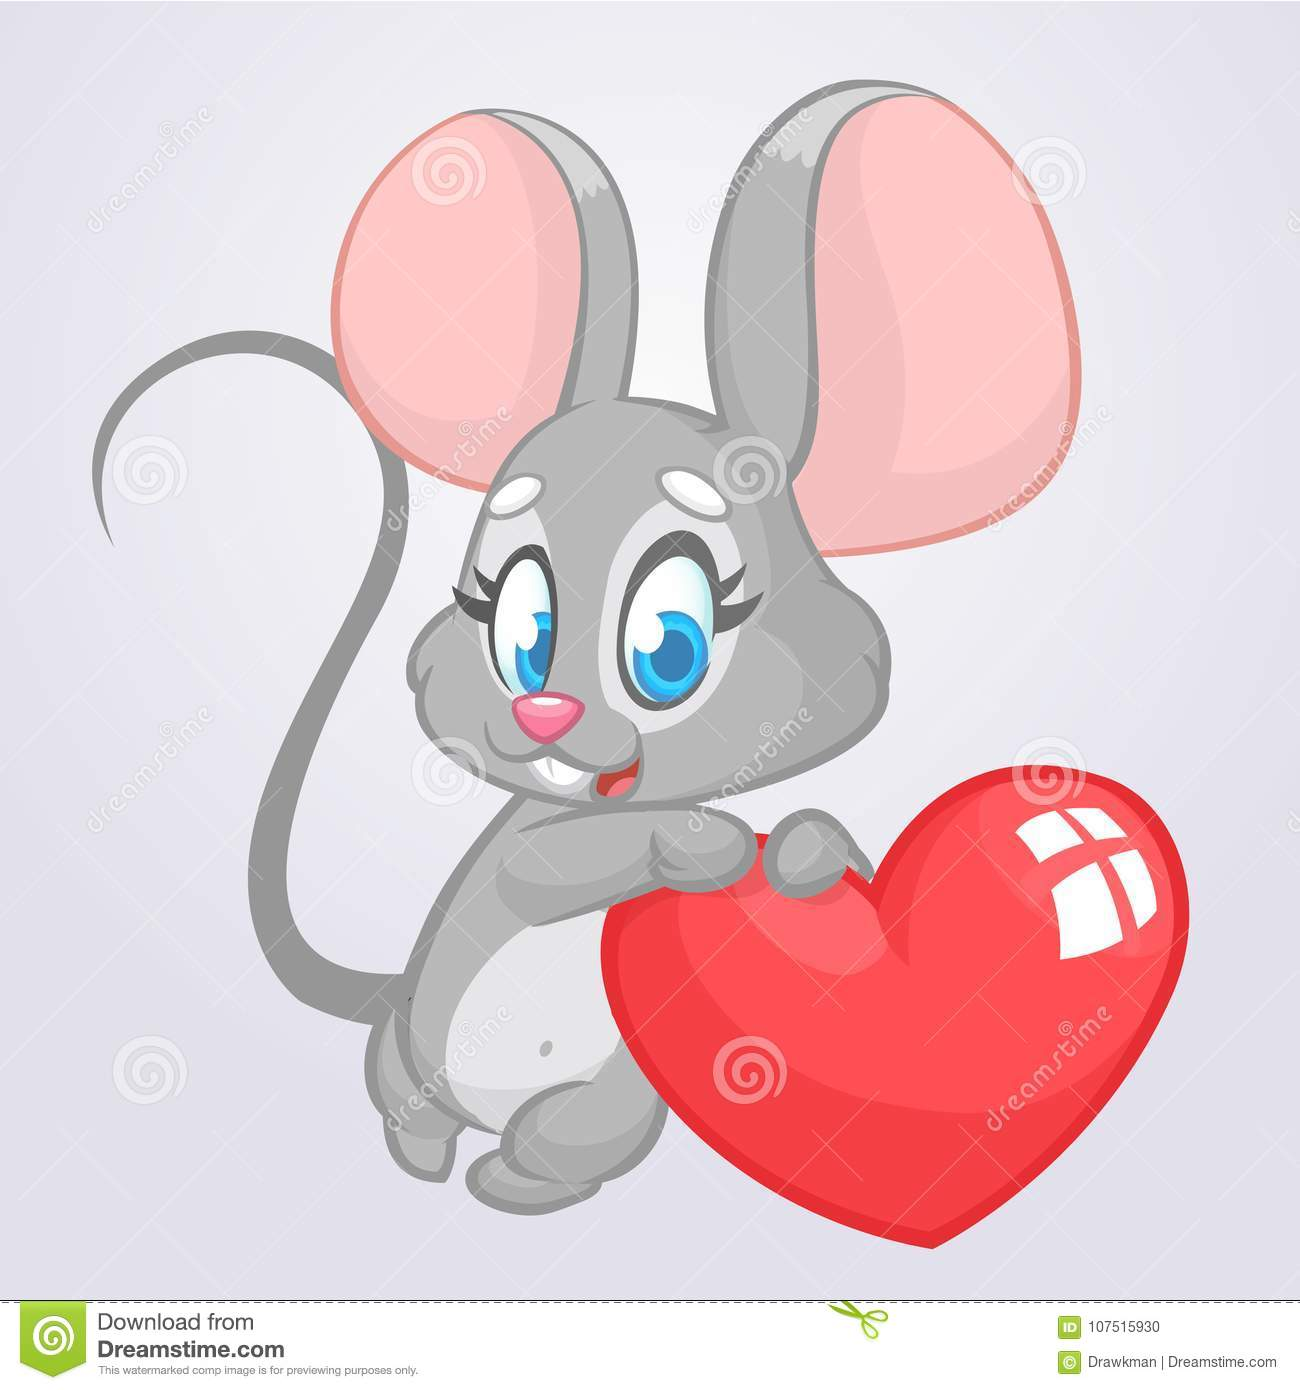 Cartoon Cute Mouse Holding A Love Heart Vector Illustration For St